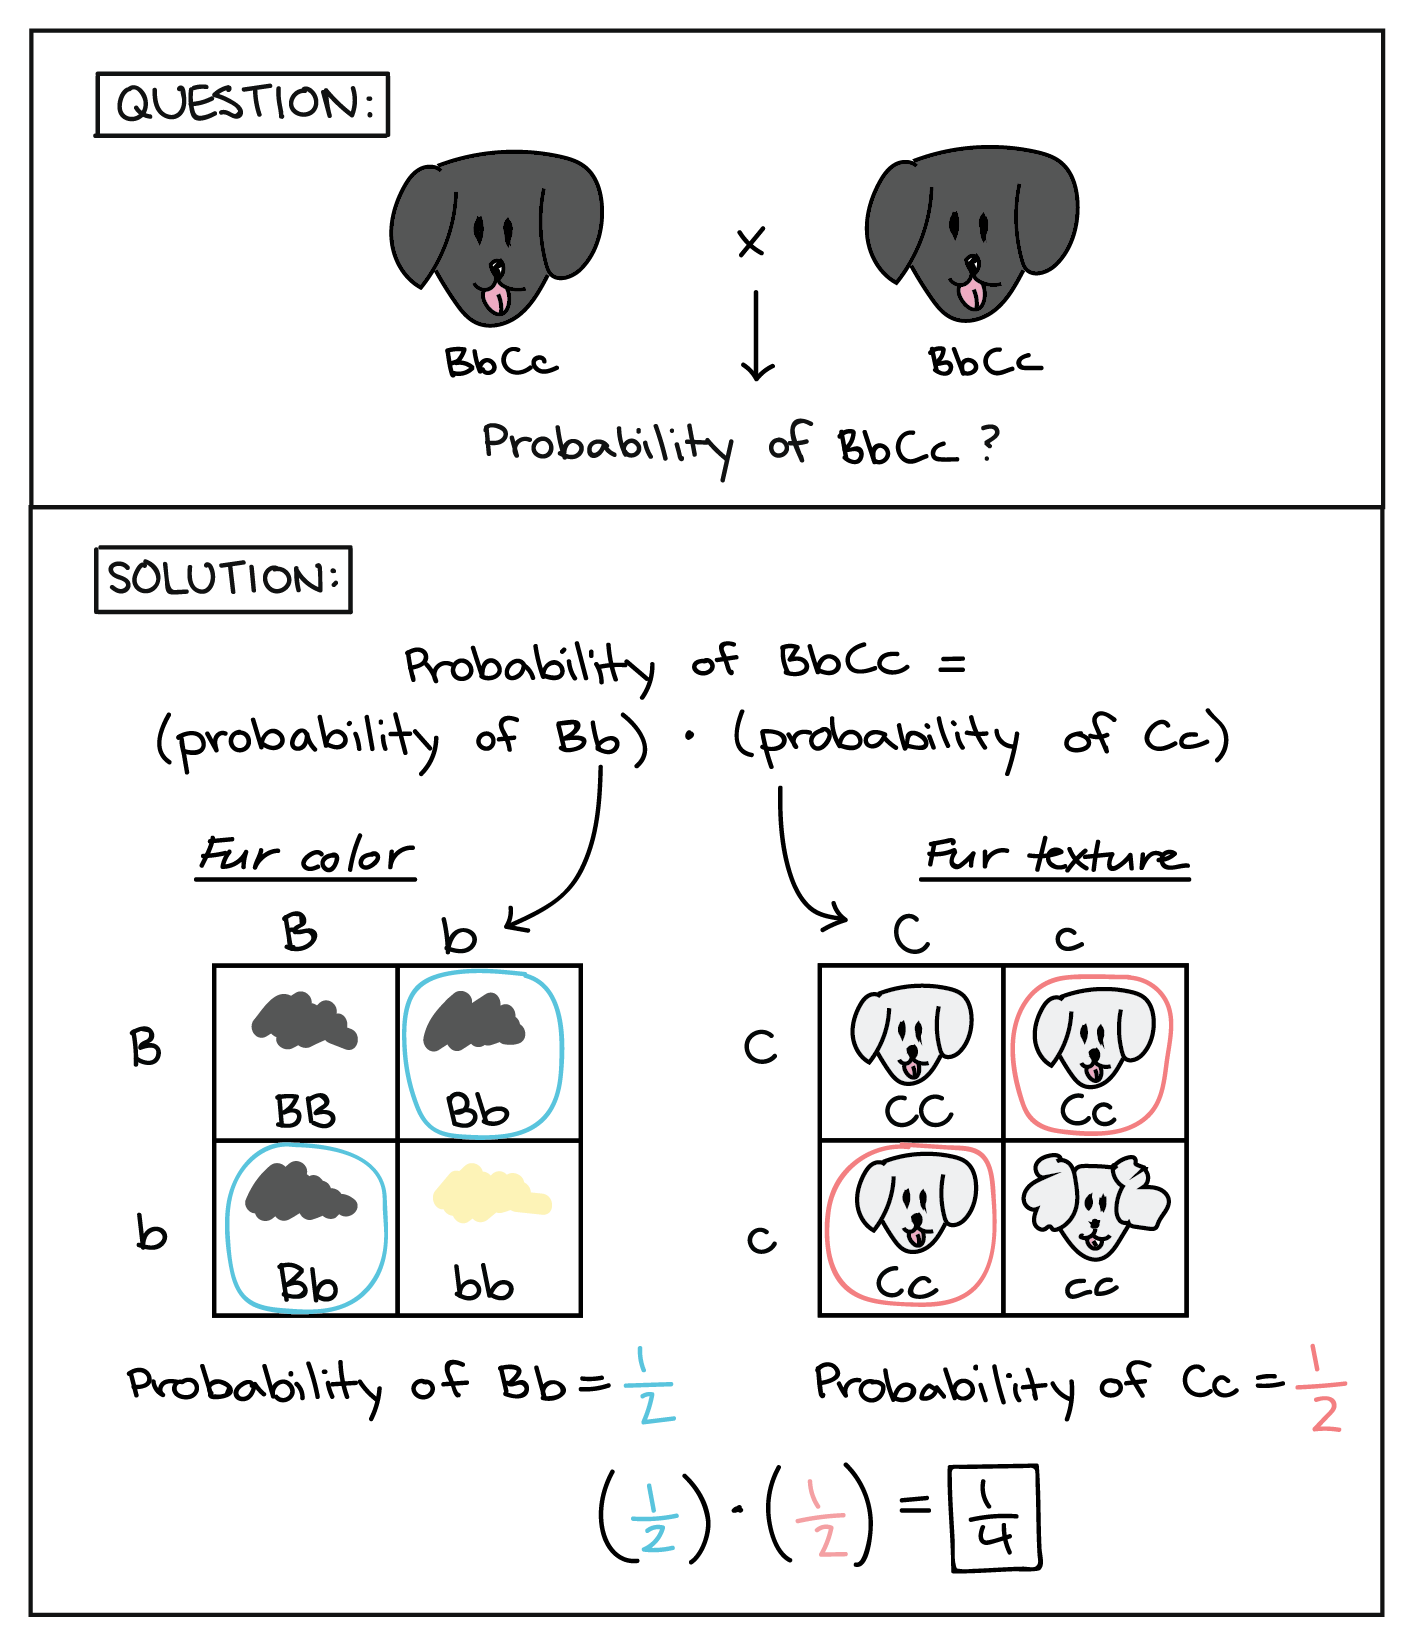 worksheet Genetics And Probability Worksheet probabilities in genetics article khan academy diagram illustrating how 2x2 punnett squares can be used conjunction with the product rule to determine probability of a particular genotype